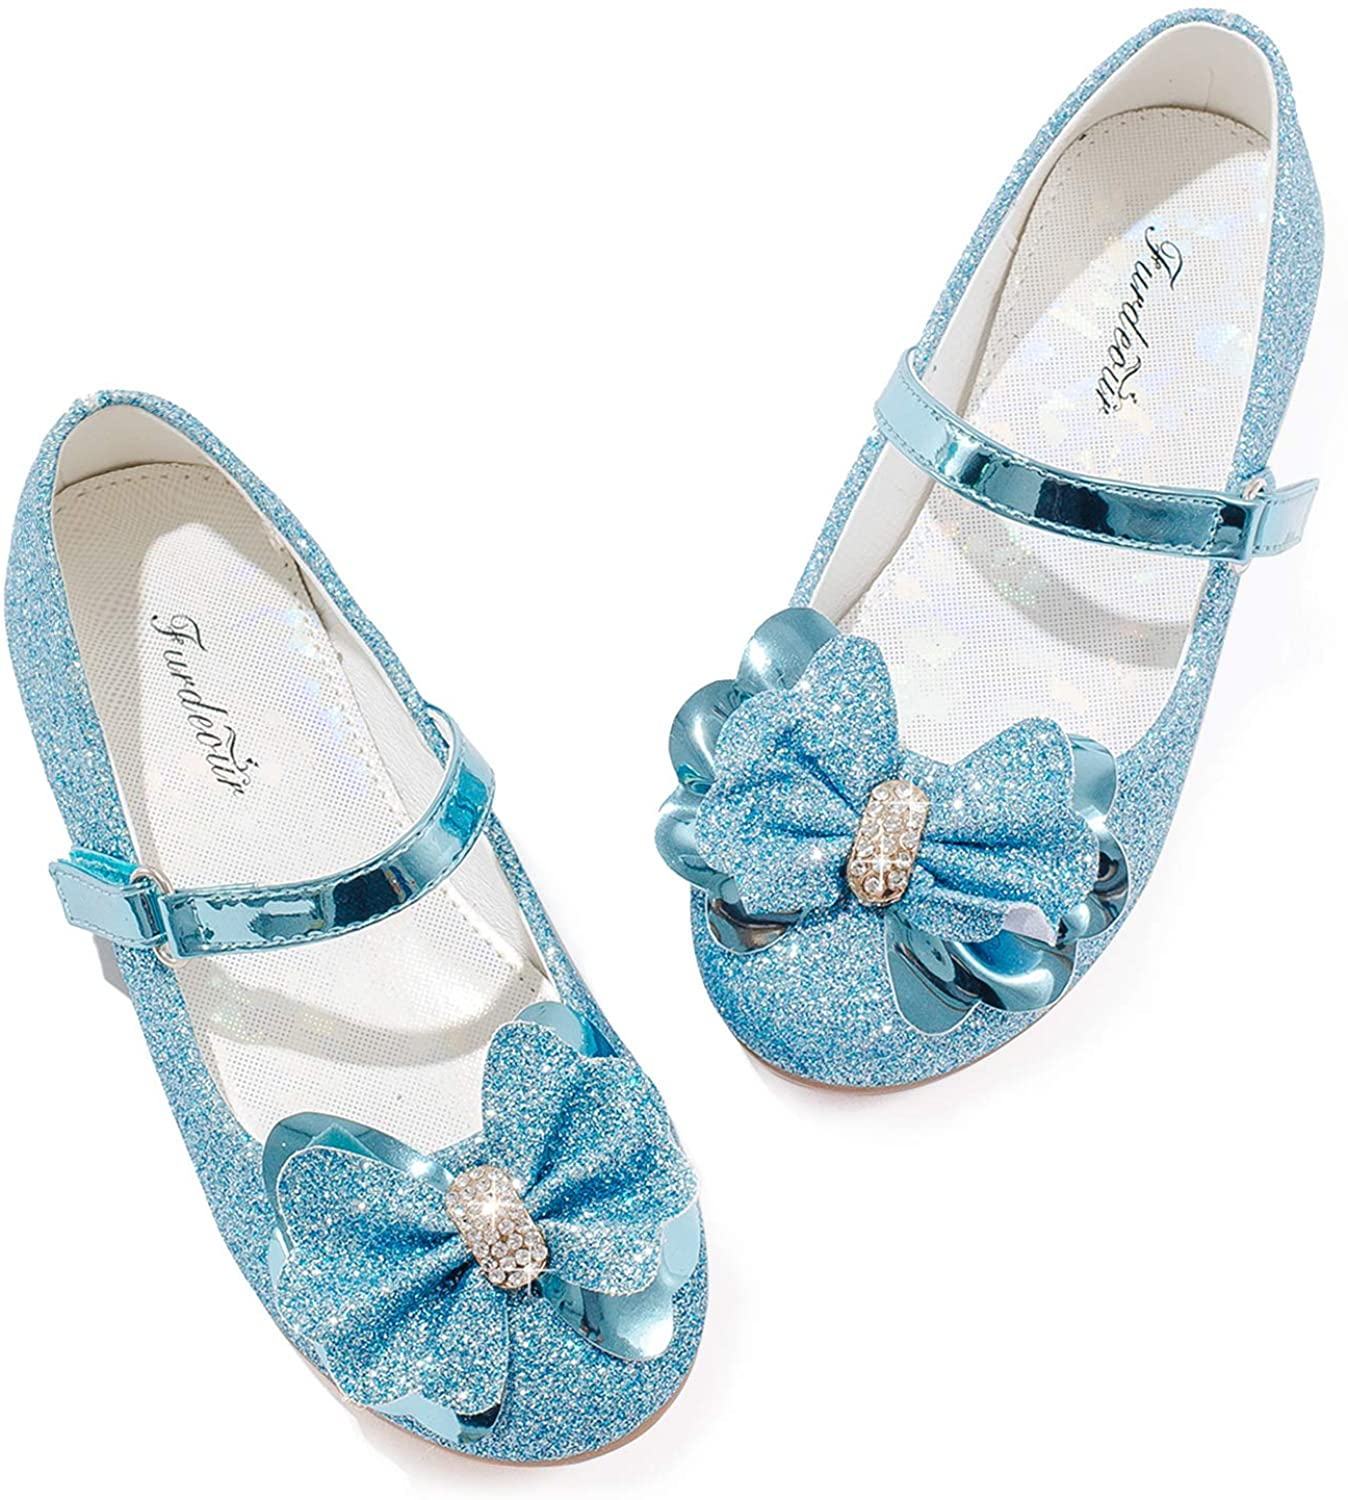 stay real Dress Shoes Flower Girls Dress Wedding Party Bridesmaids Heel Mary Jane Princess Shoes